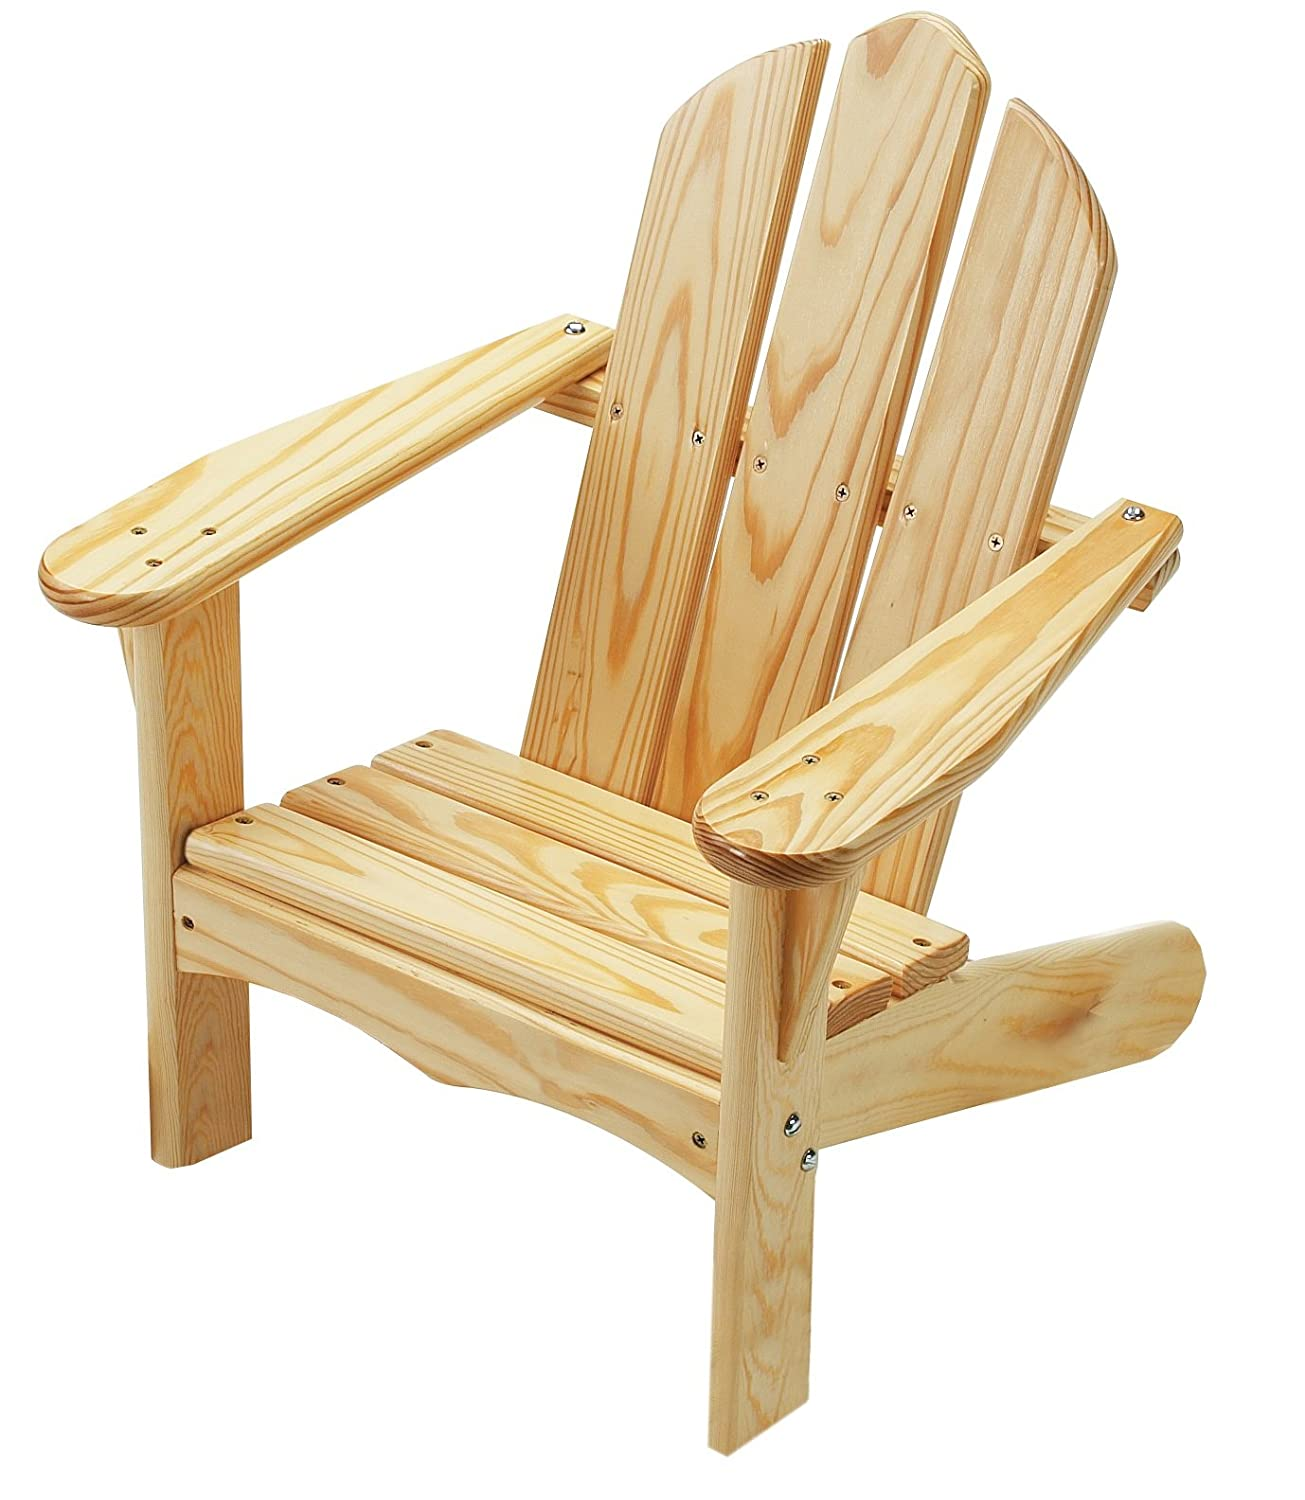 Superb Amazon.com: Little Colorado Childu0027s Adirondack Chair  Unfinished: Toys U0026  Games